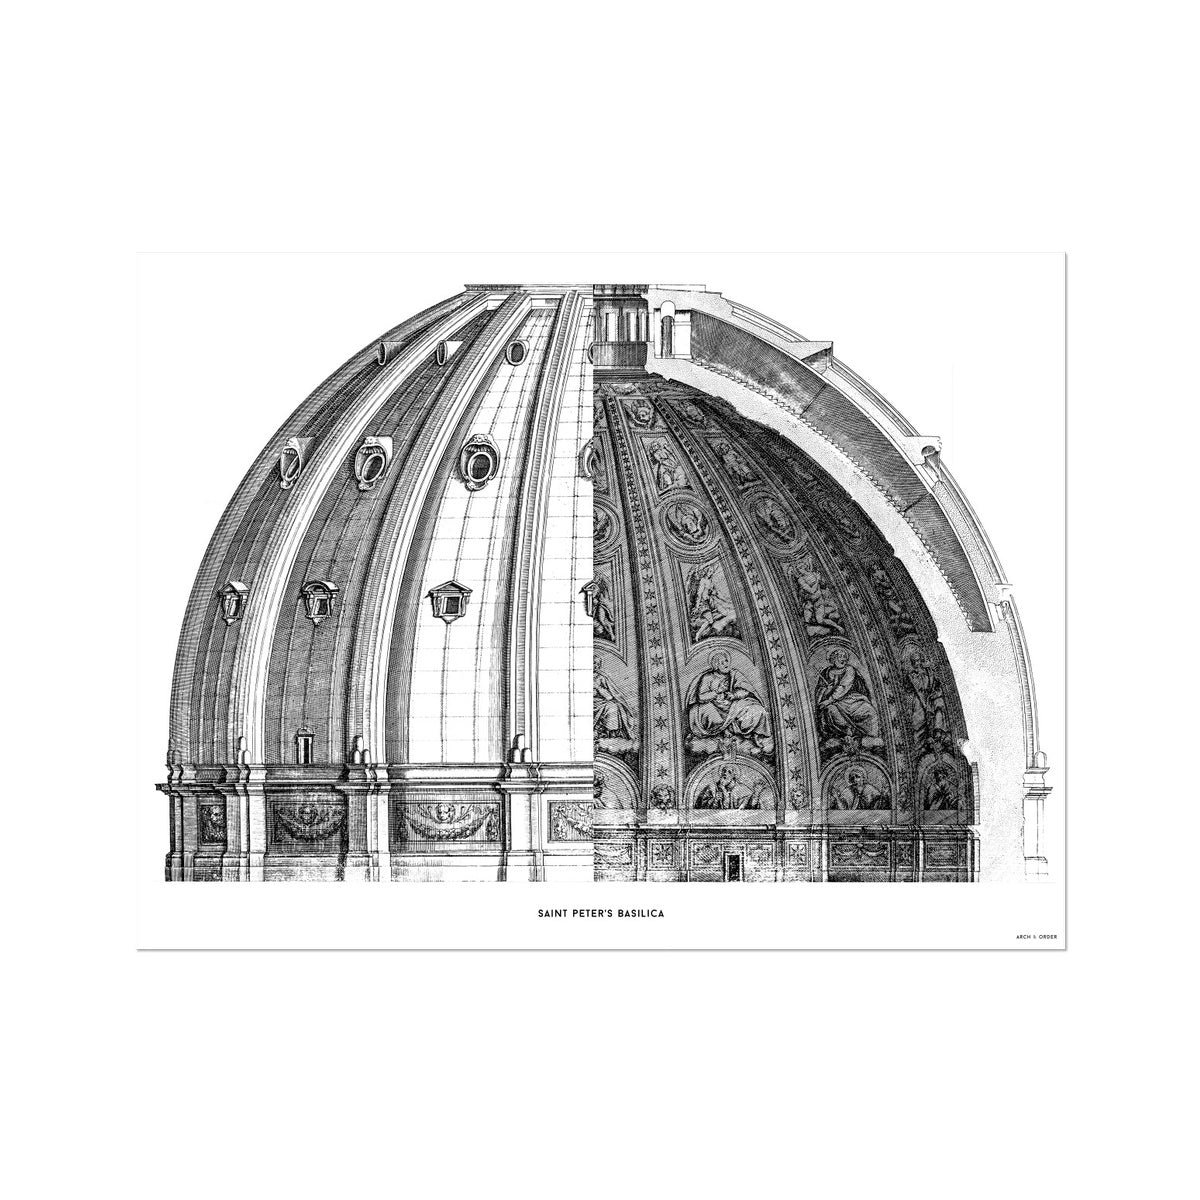 Saint Peter's Basilica - Dome Cross Section - White -  Etching Paper Print